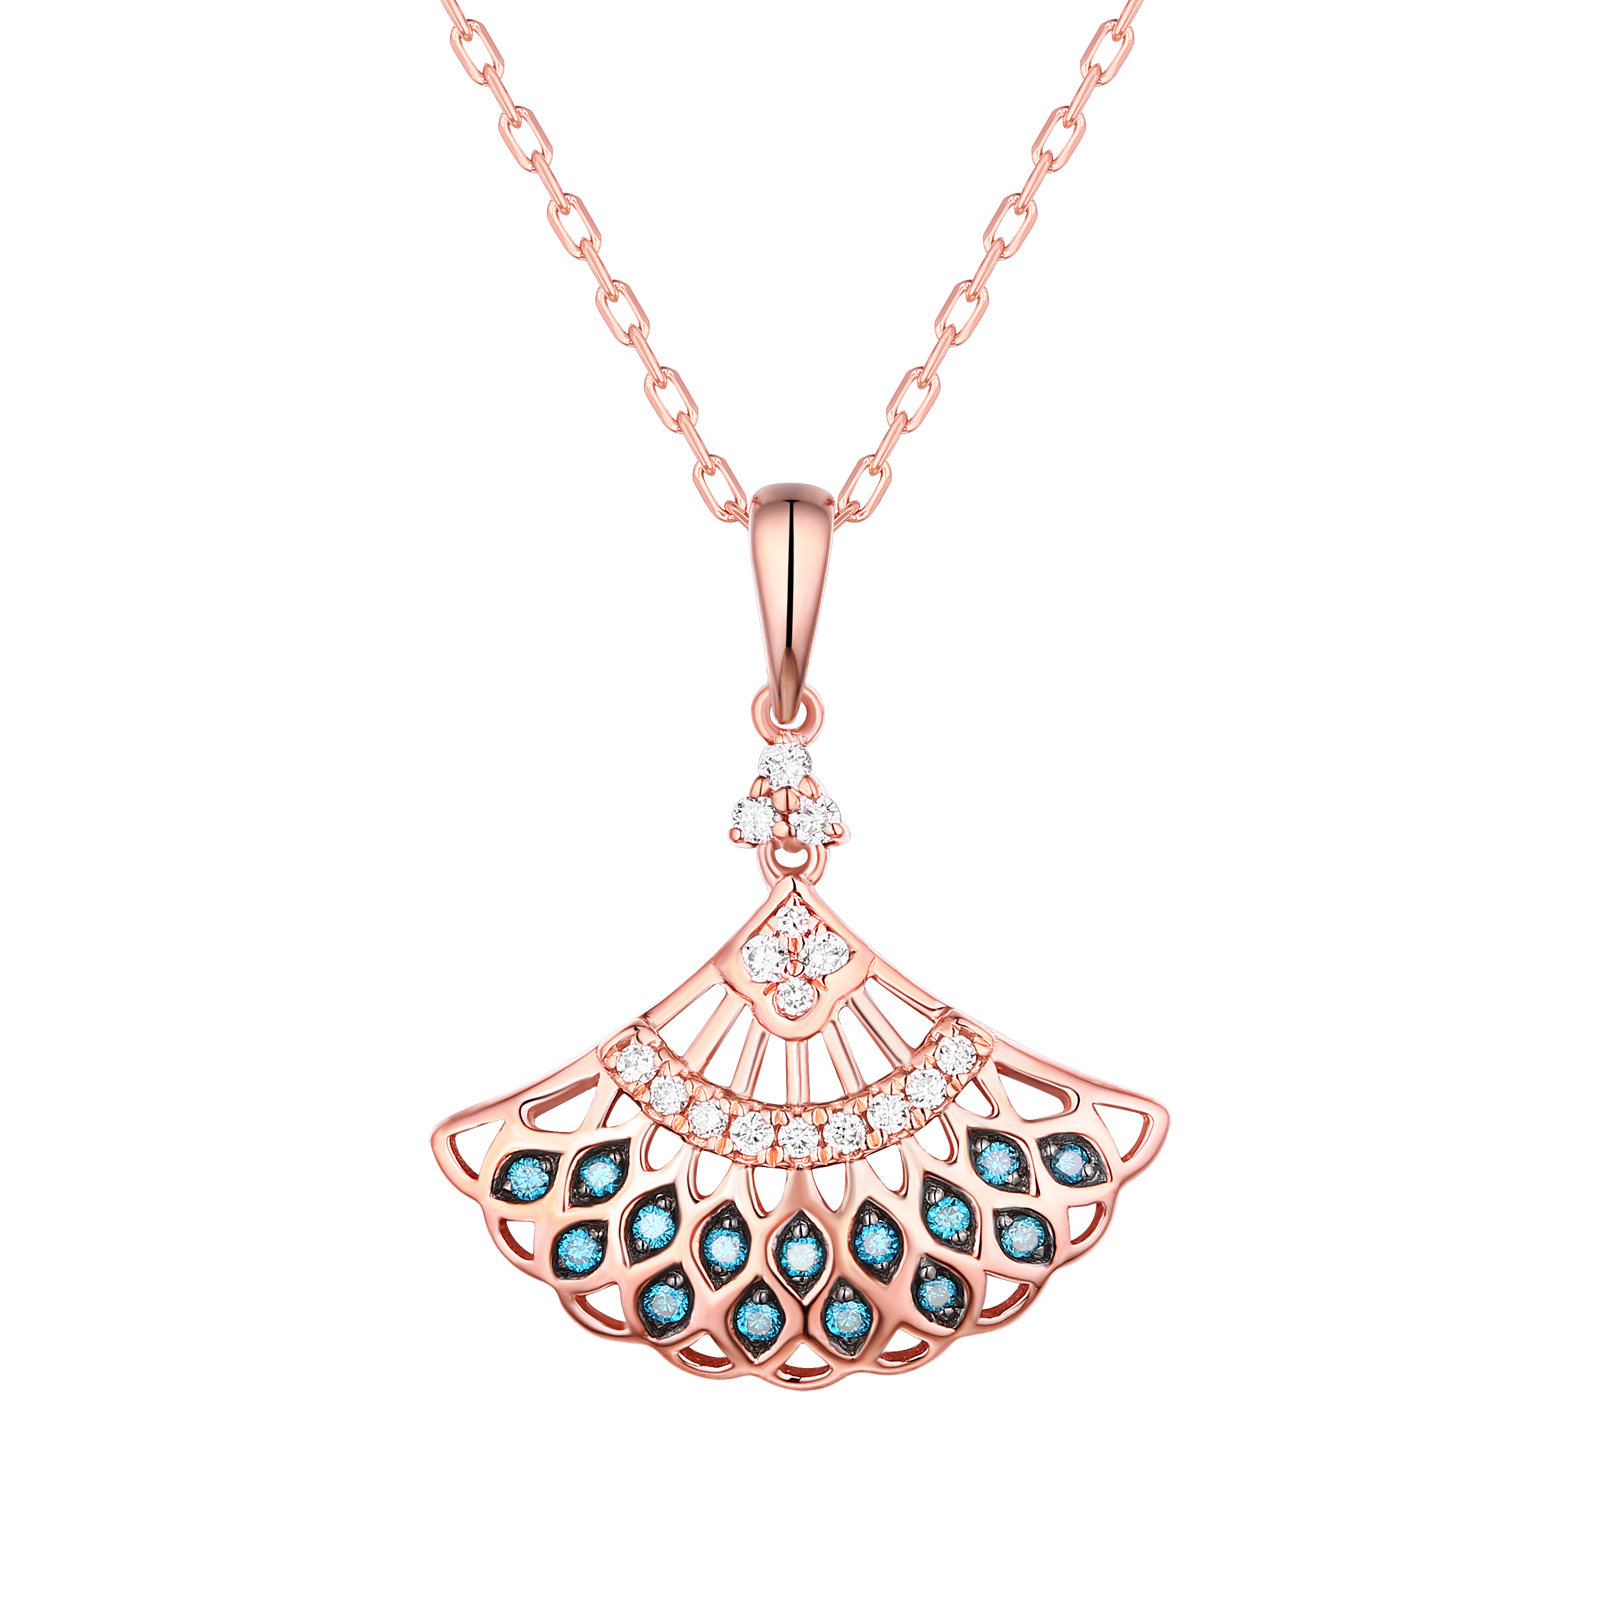 P29915BLU- 14K Rose Gold Diamond Pendant, 0.16 TCW